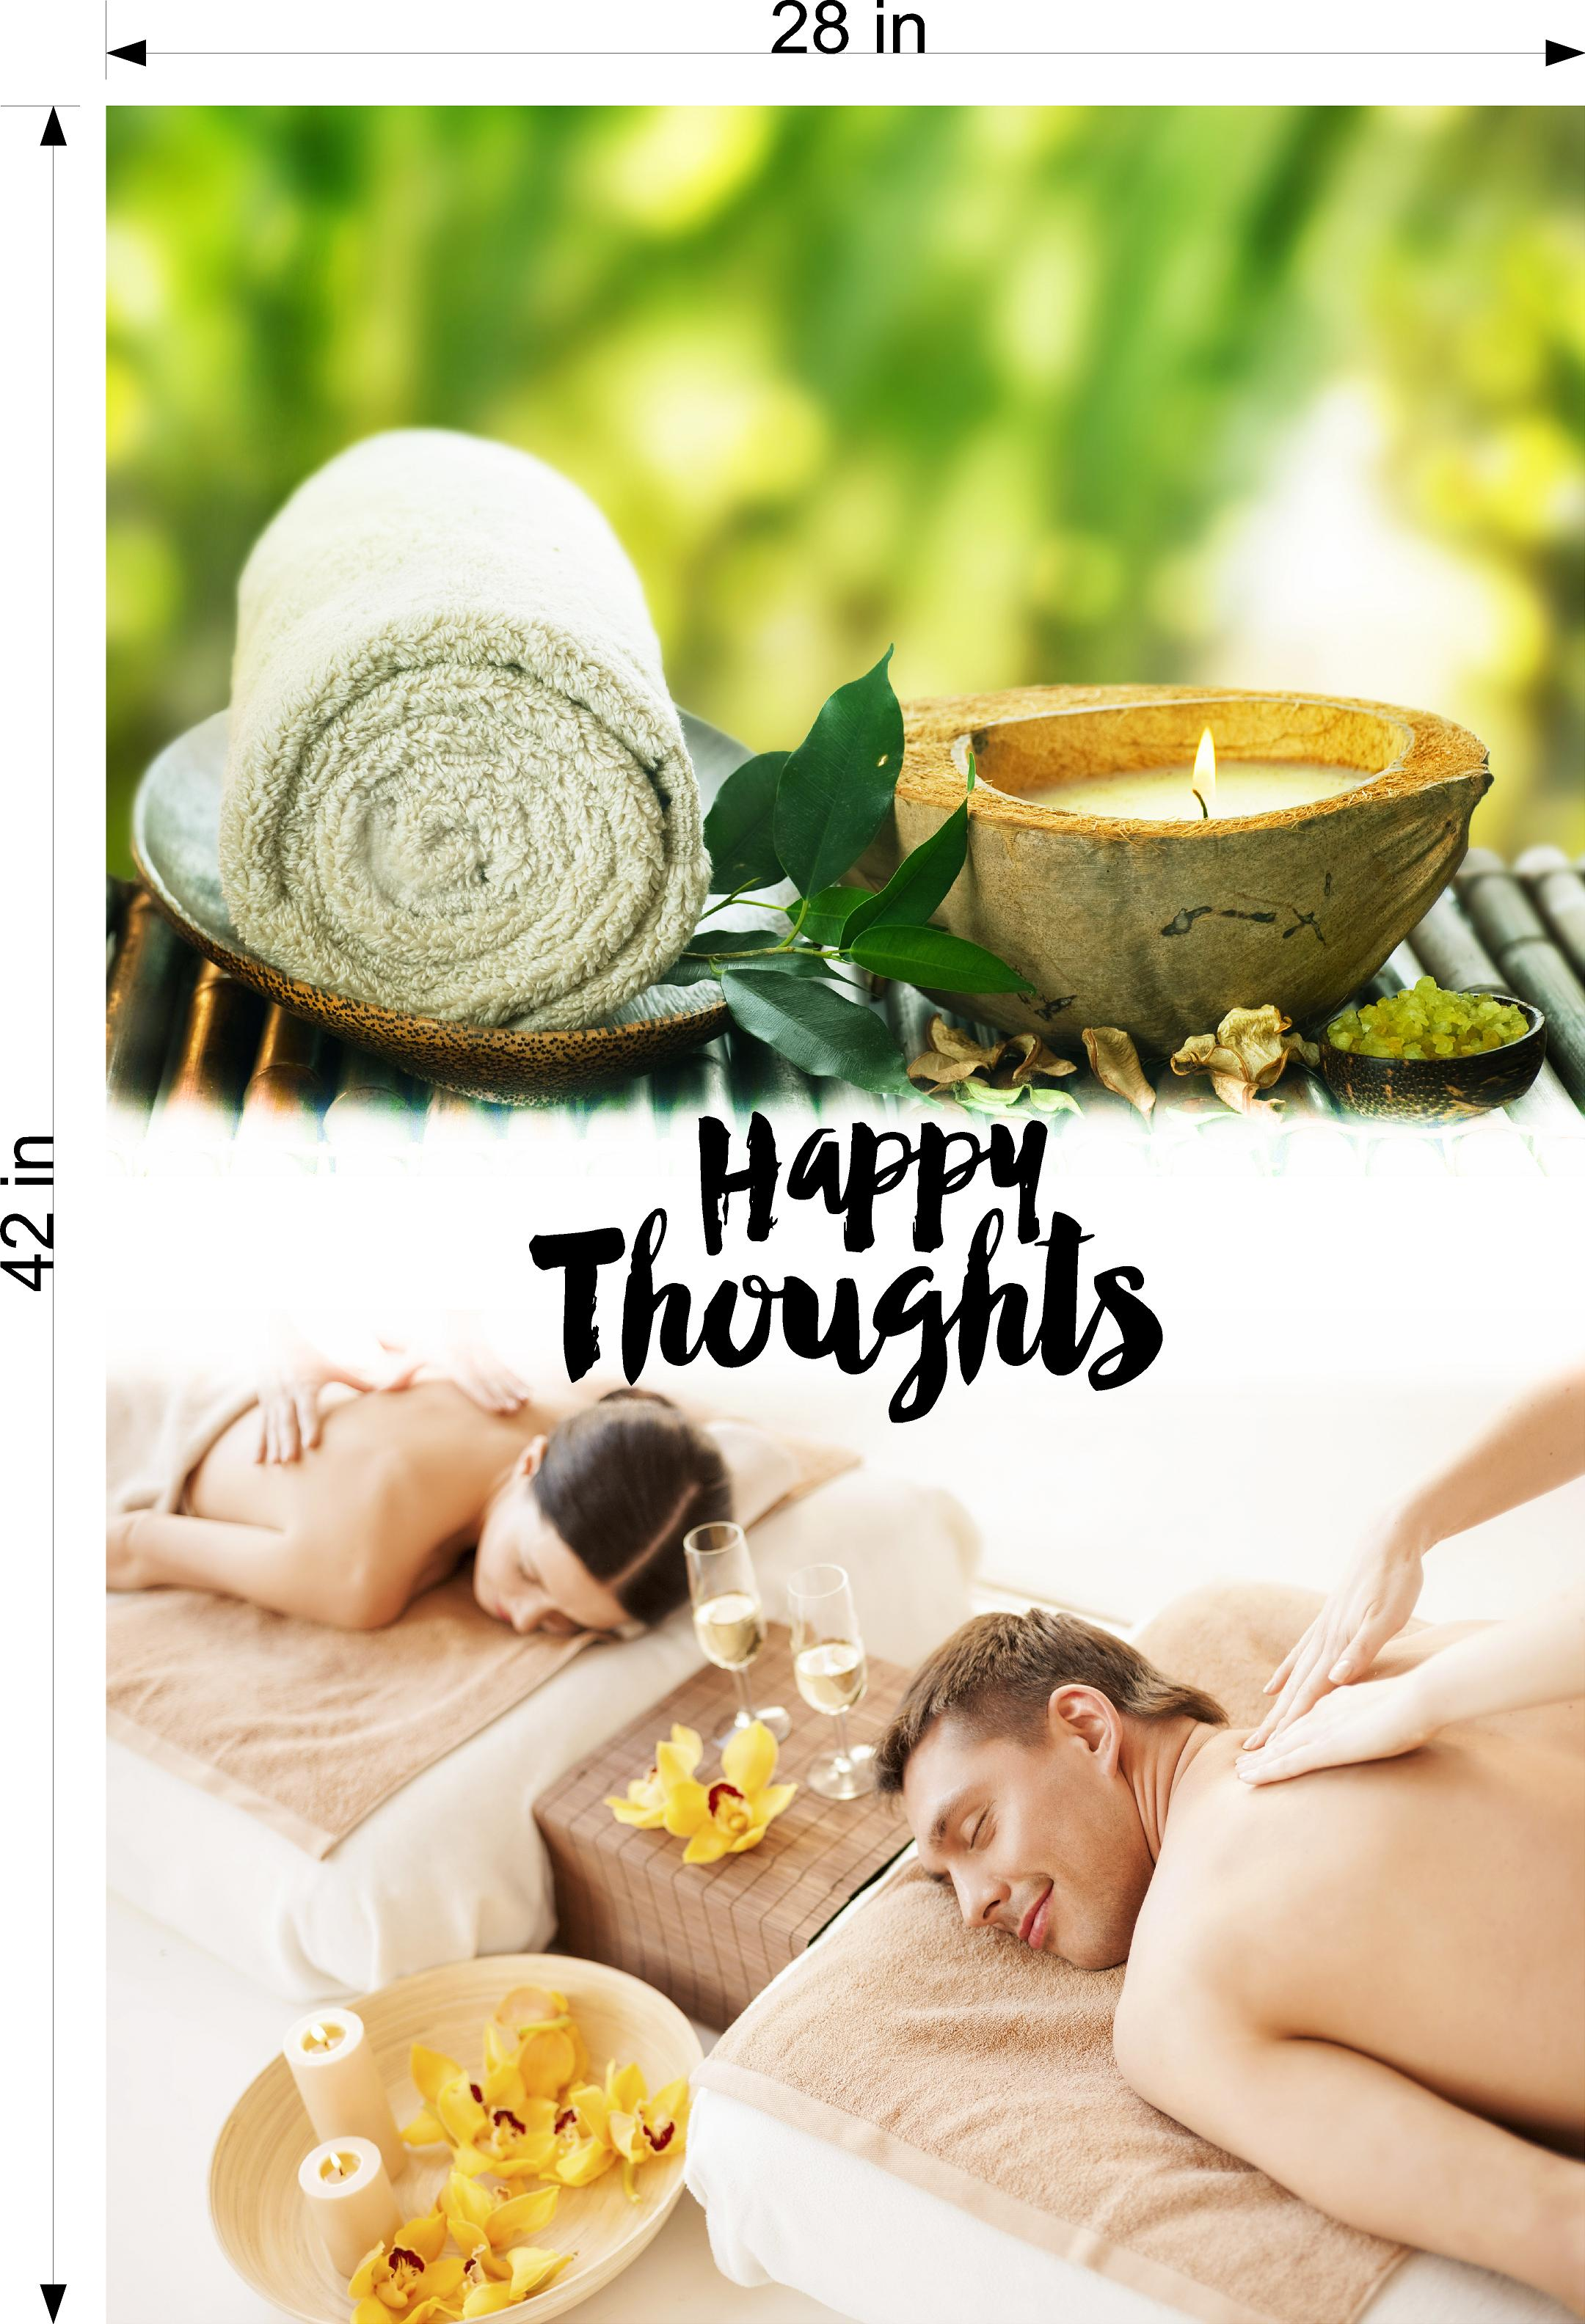 Quote 30 Photo-Realistic Paper Poster Matte Interior Inside Sign Wall Window Non-Laminated Happy Thoughts Vertical